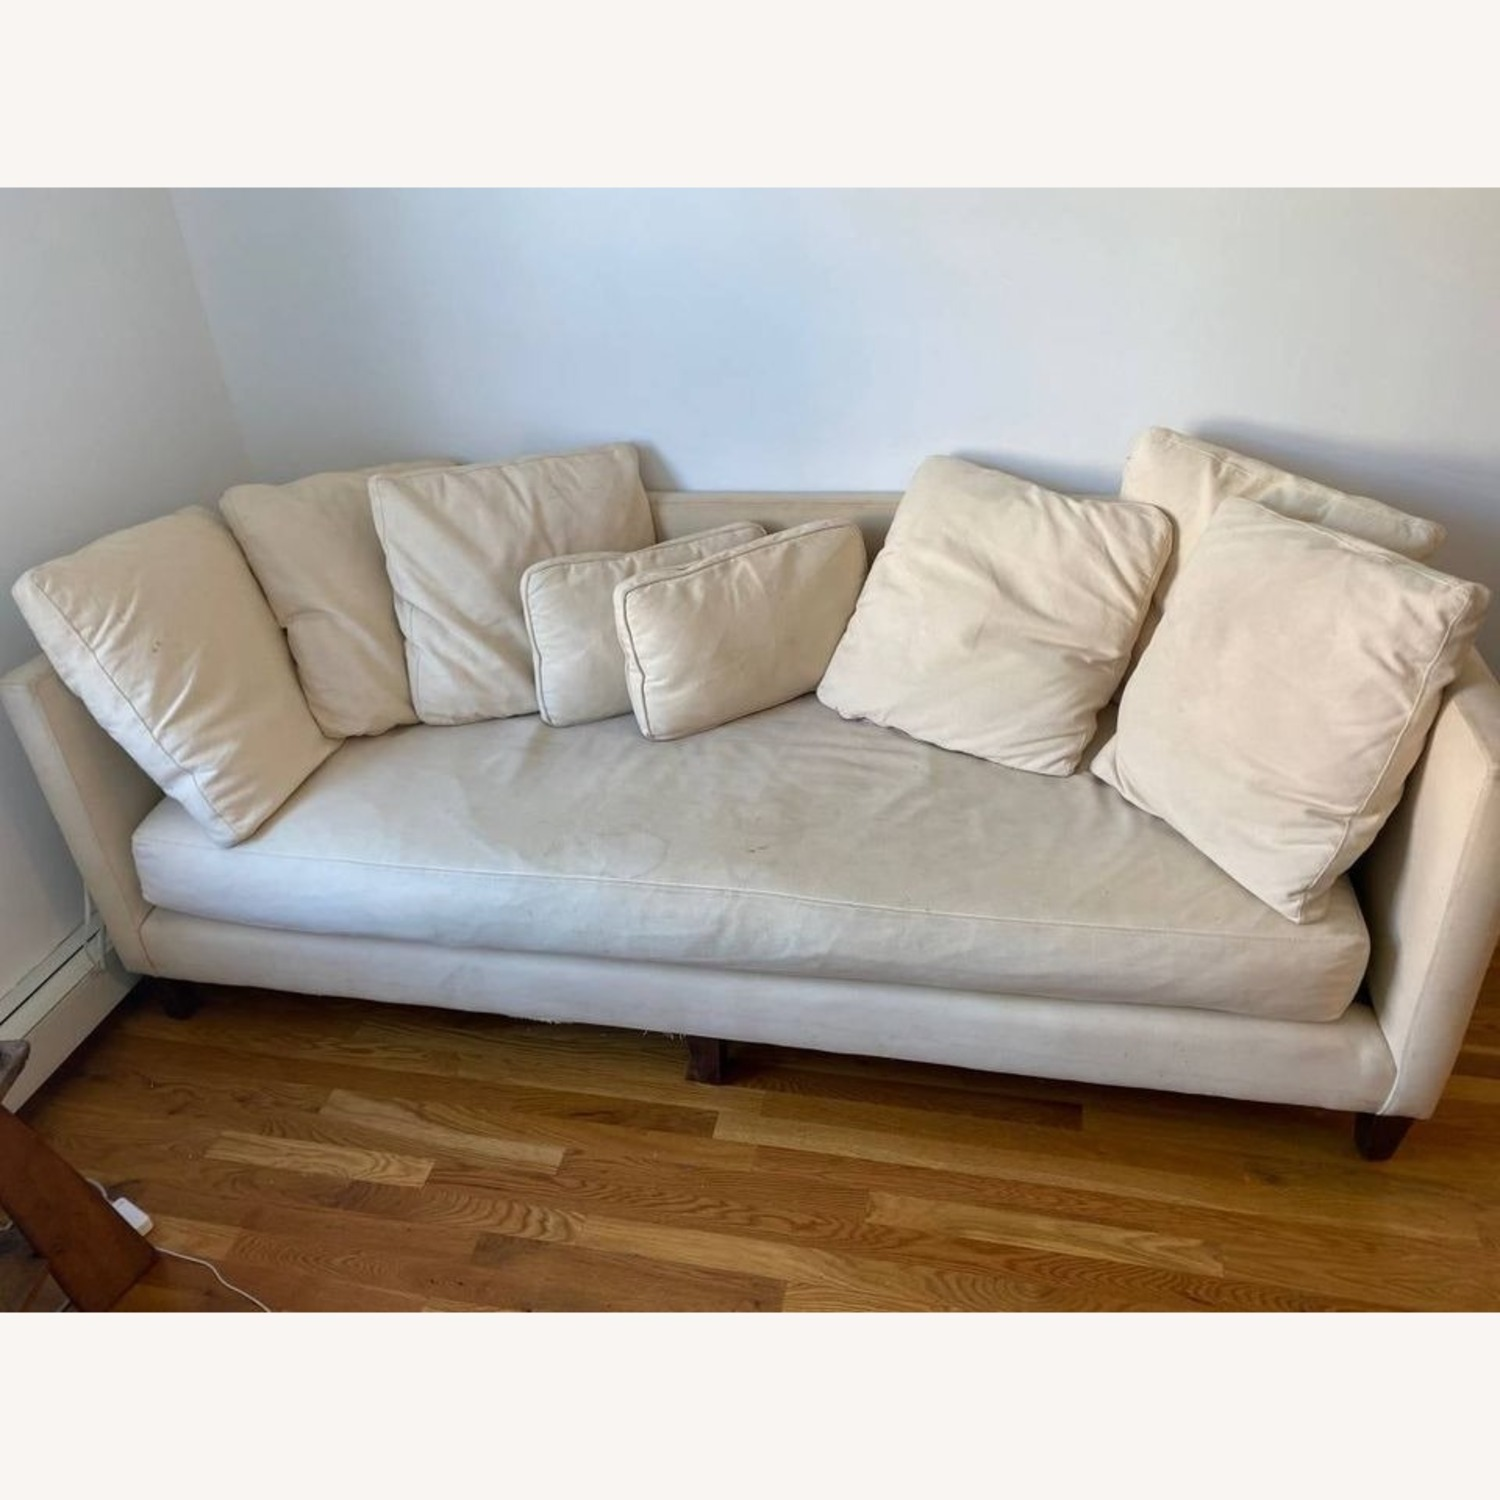 Crate & Barrel Wood Leg Couch - image-5